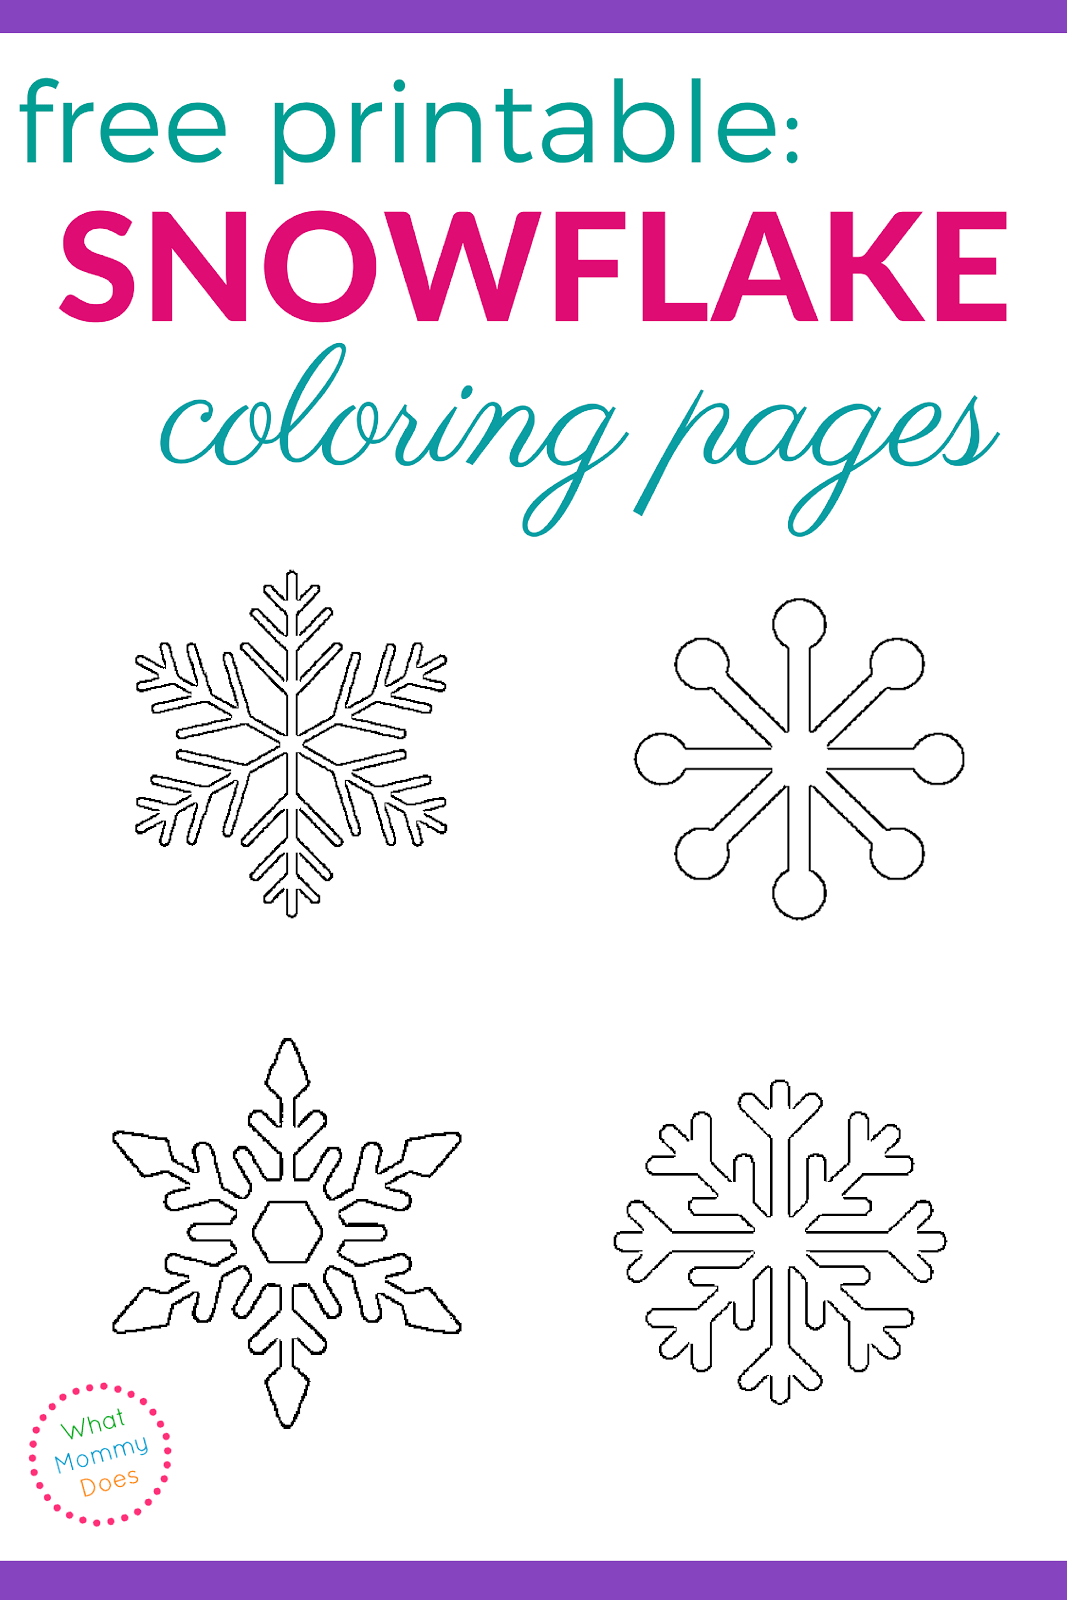 Free printable snowflake coloring pages what mommy does, i love my mommy coloring pages